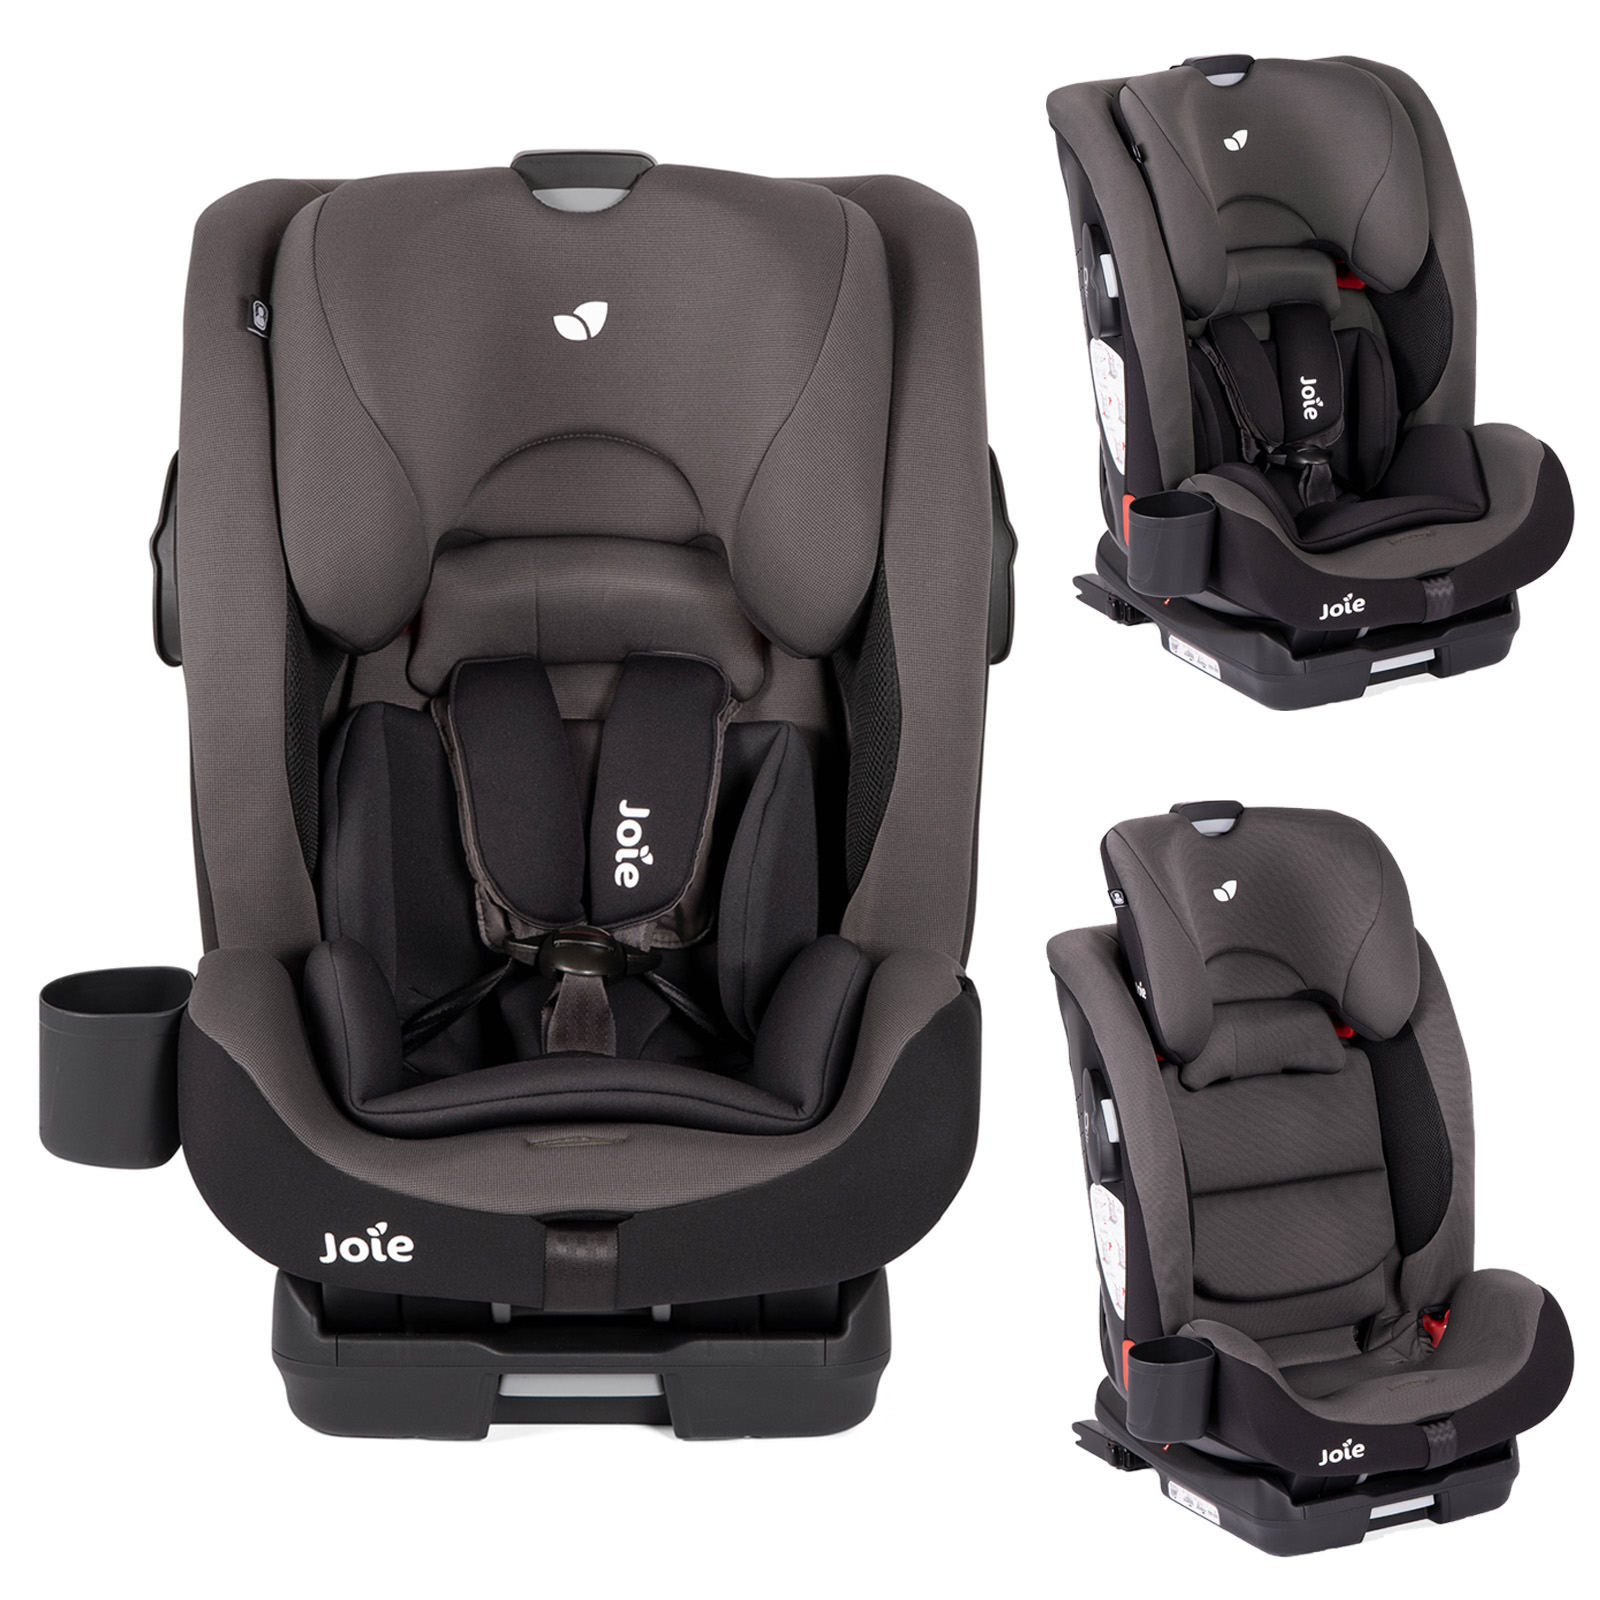 Joie Bold Group 1,2,3 Isofix Car Seat - Ember | Buy at ...